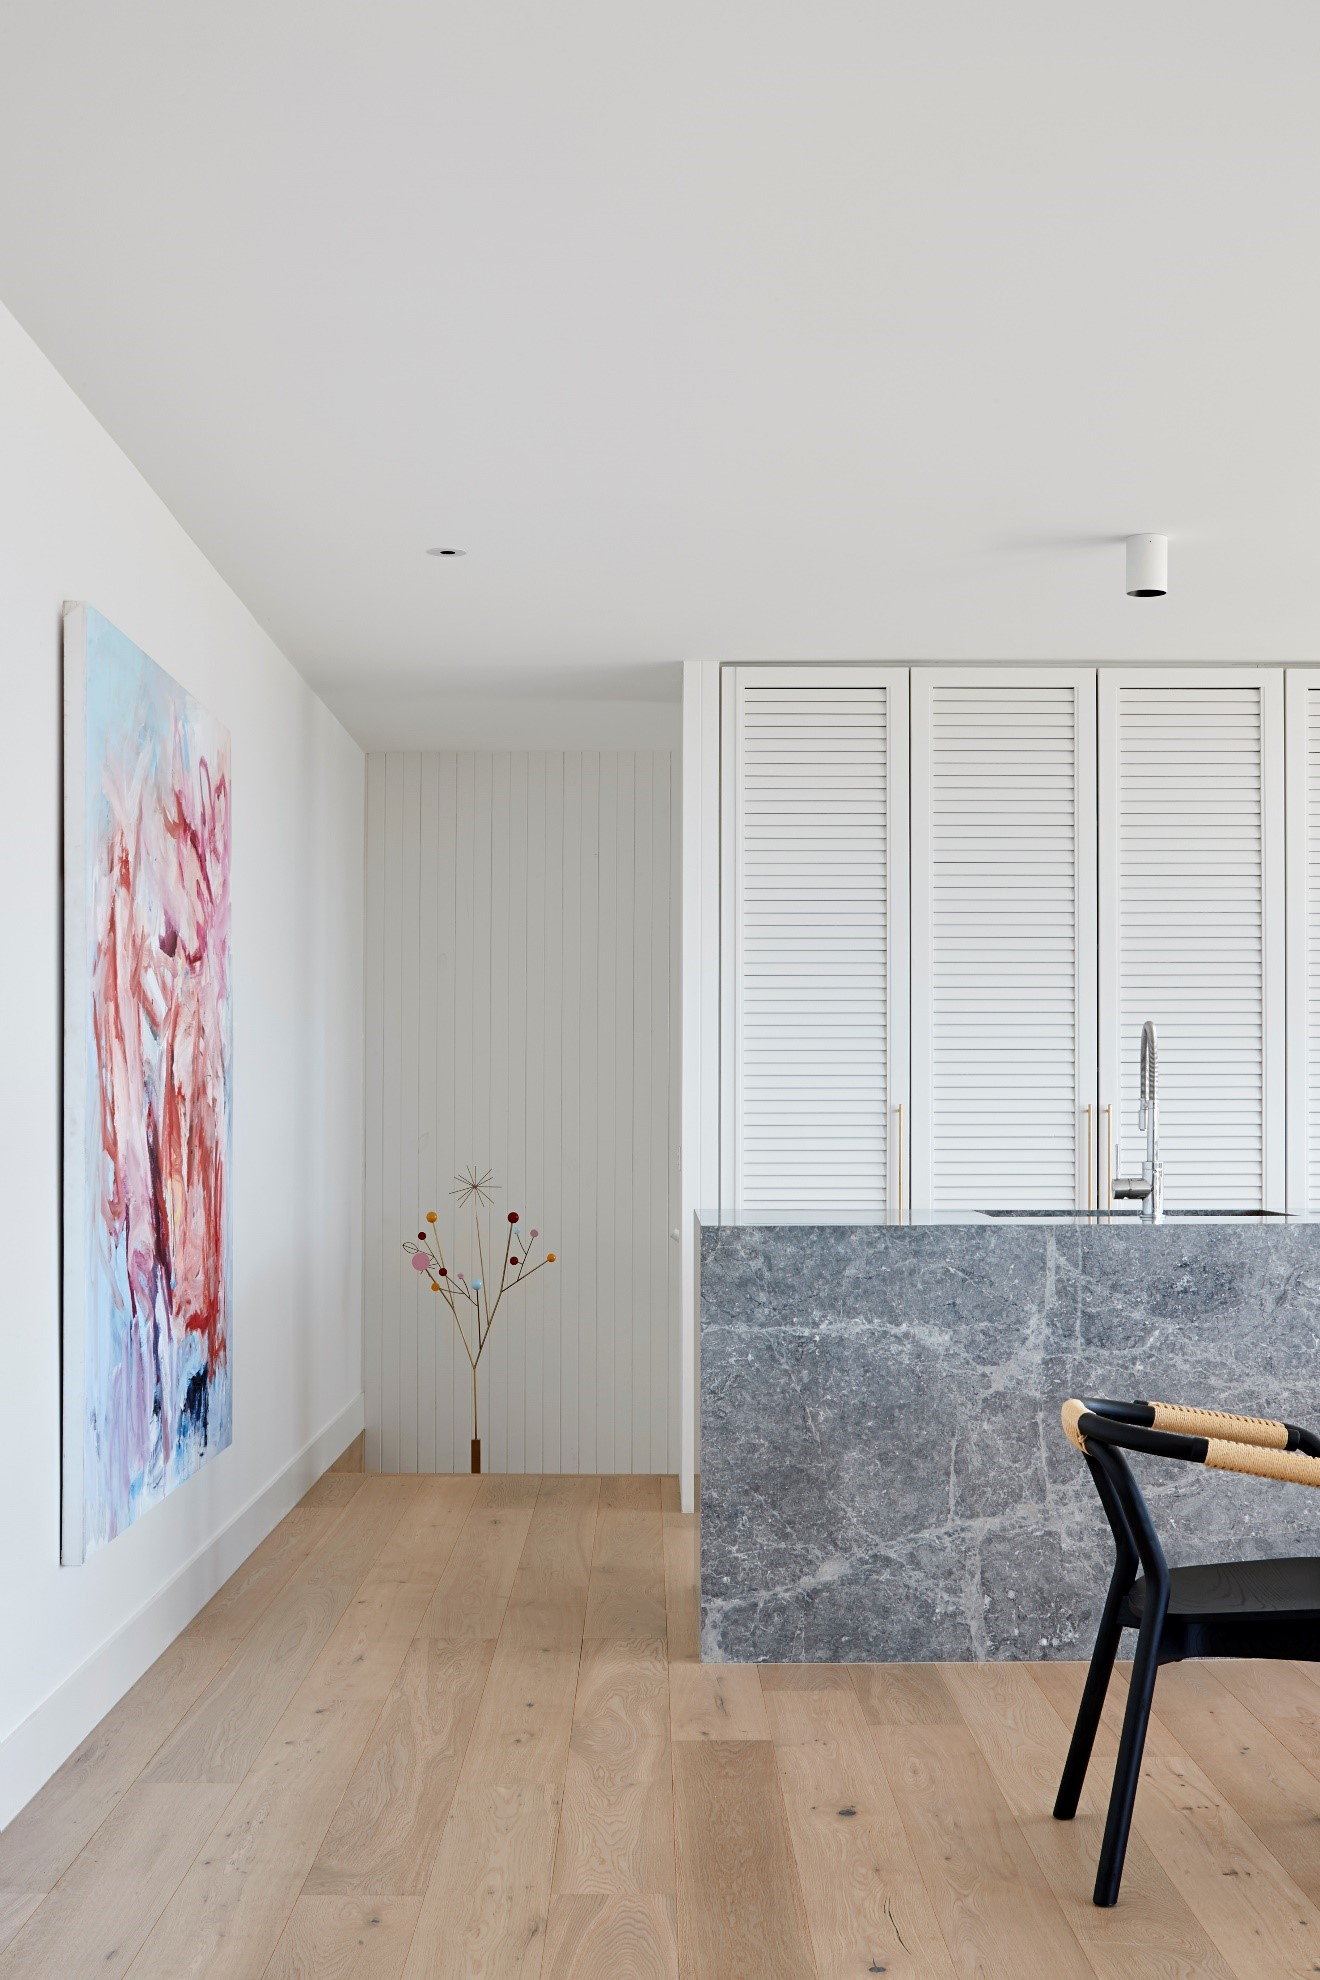 Two Elements Were Essential To Achieving This Goal The Material Selection, And The Considered Arrangement Of Spaces